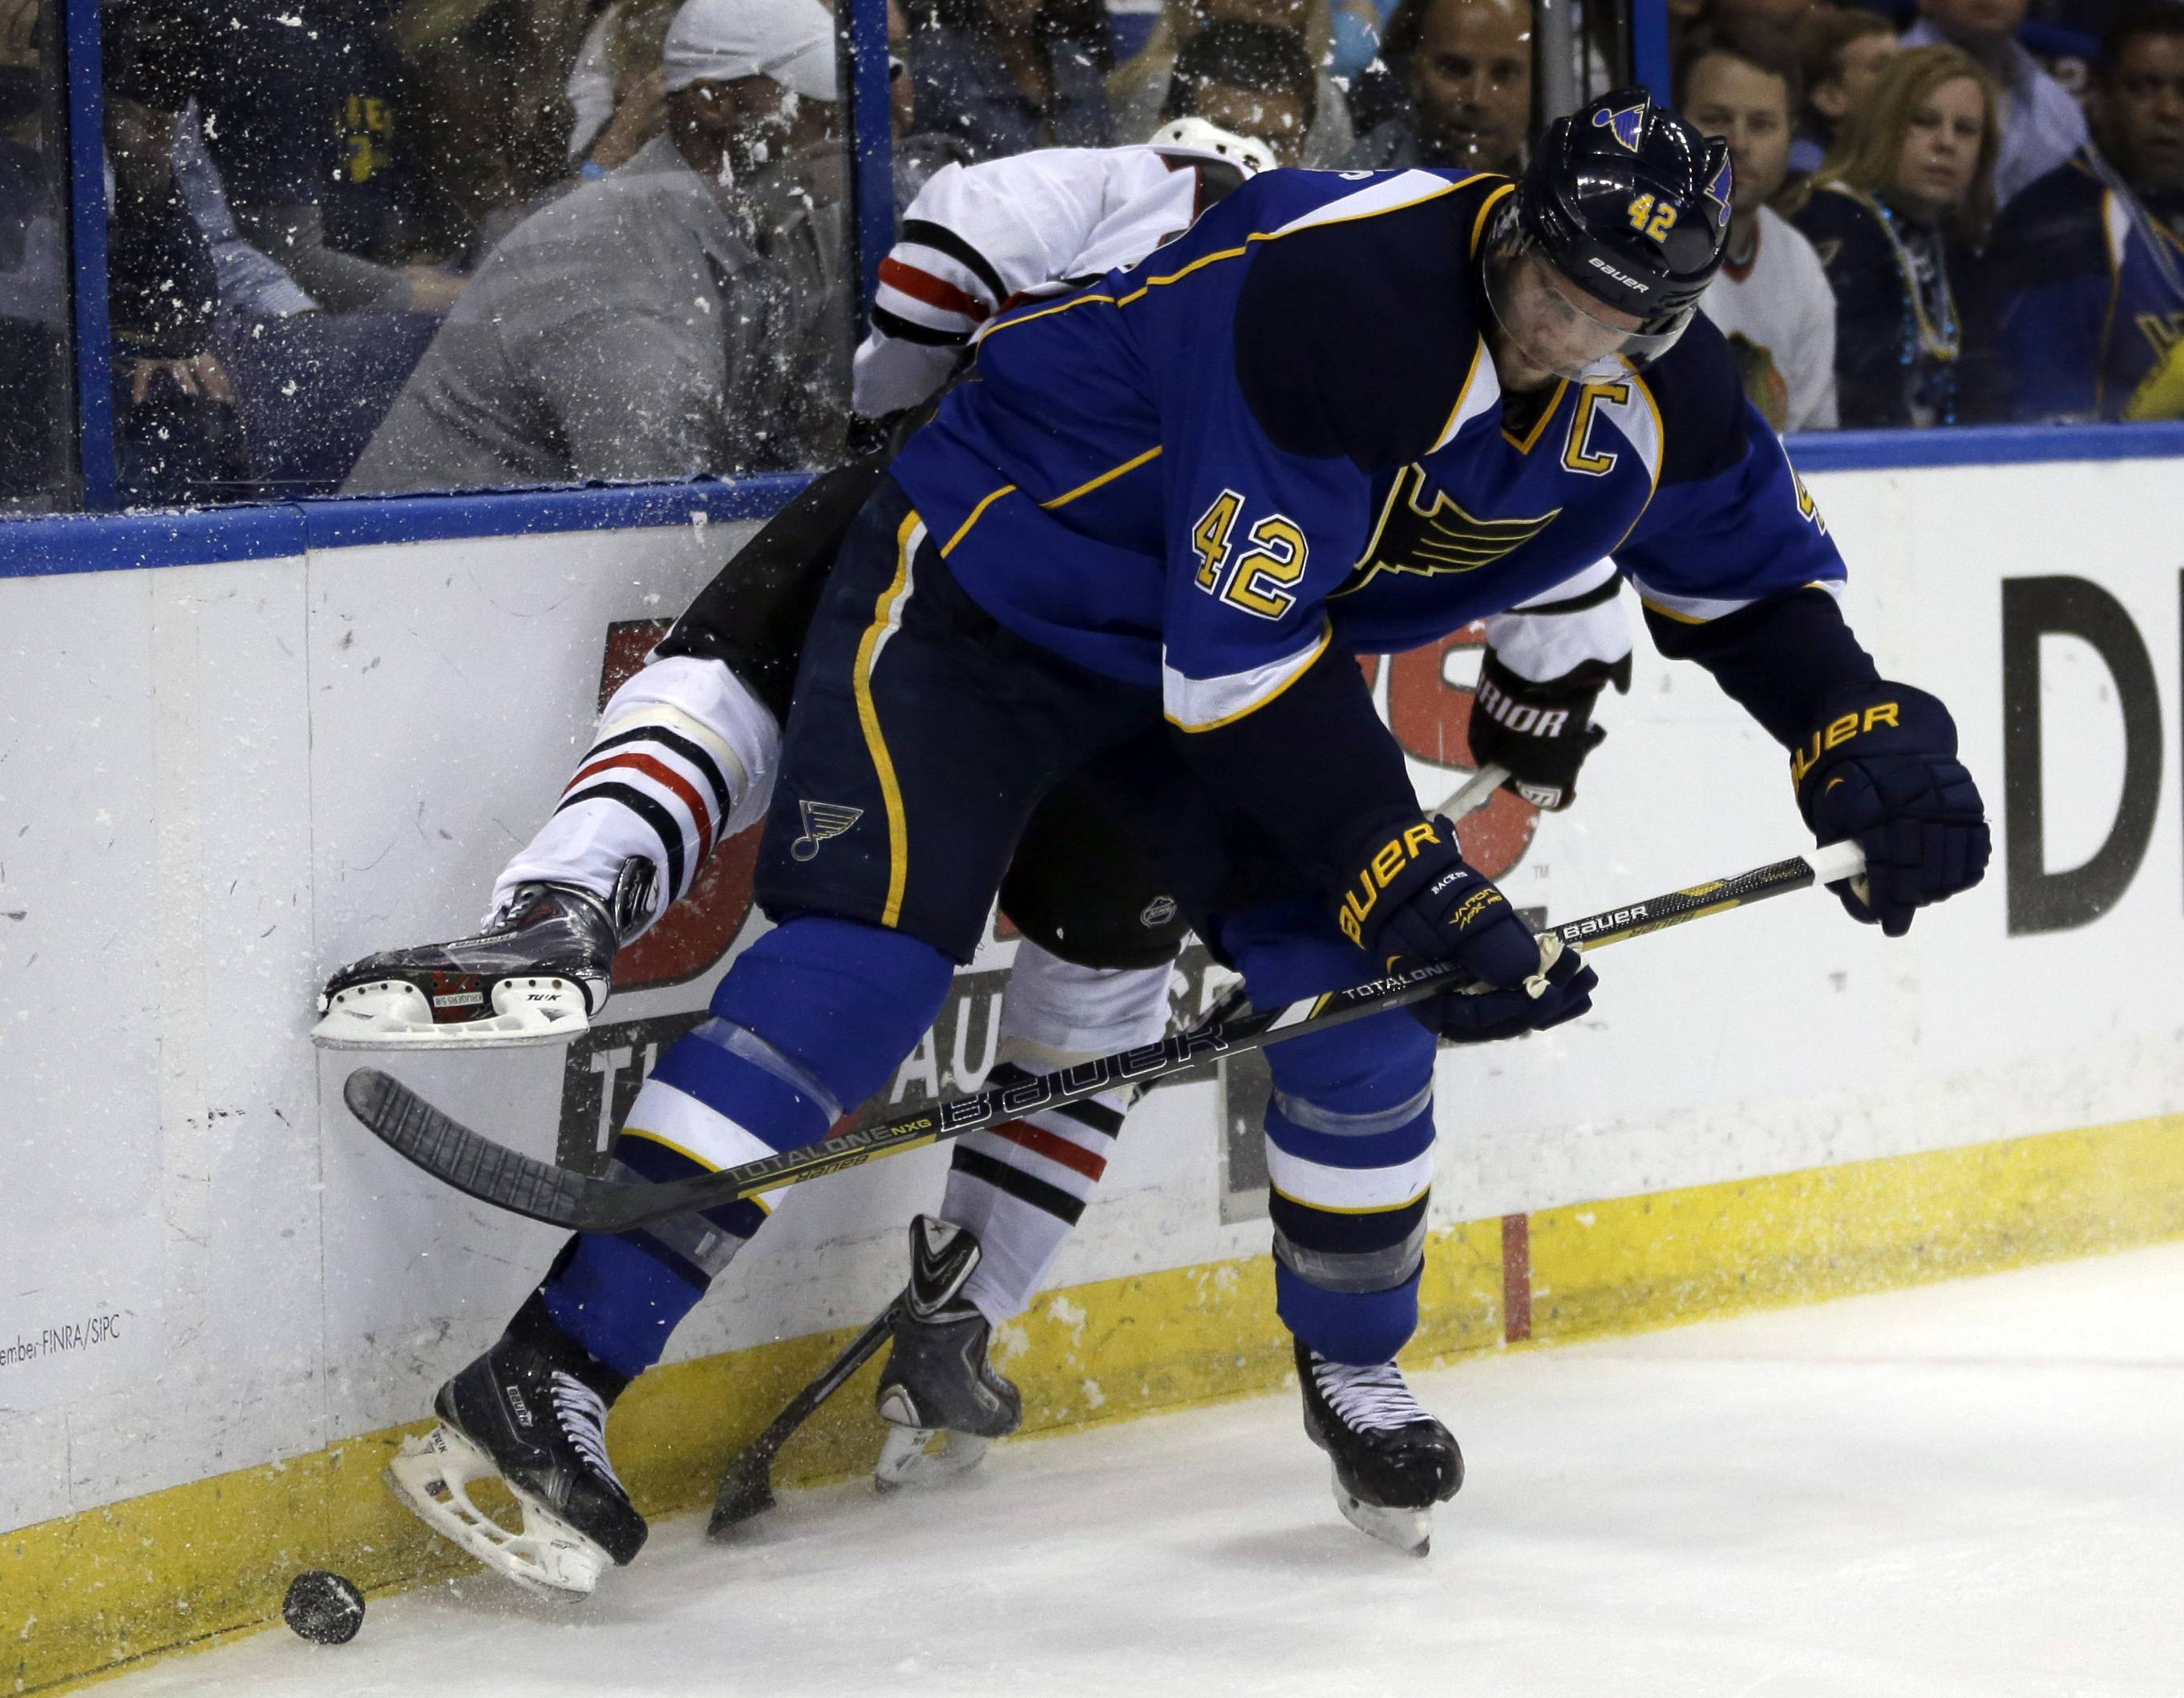 St. Louis Blues' David Backes, front, checks Chicago Blackhawks' Marcus Kruger, of Sweden, into the boards while chasing after a loose puck during the third period.